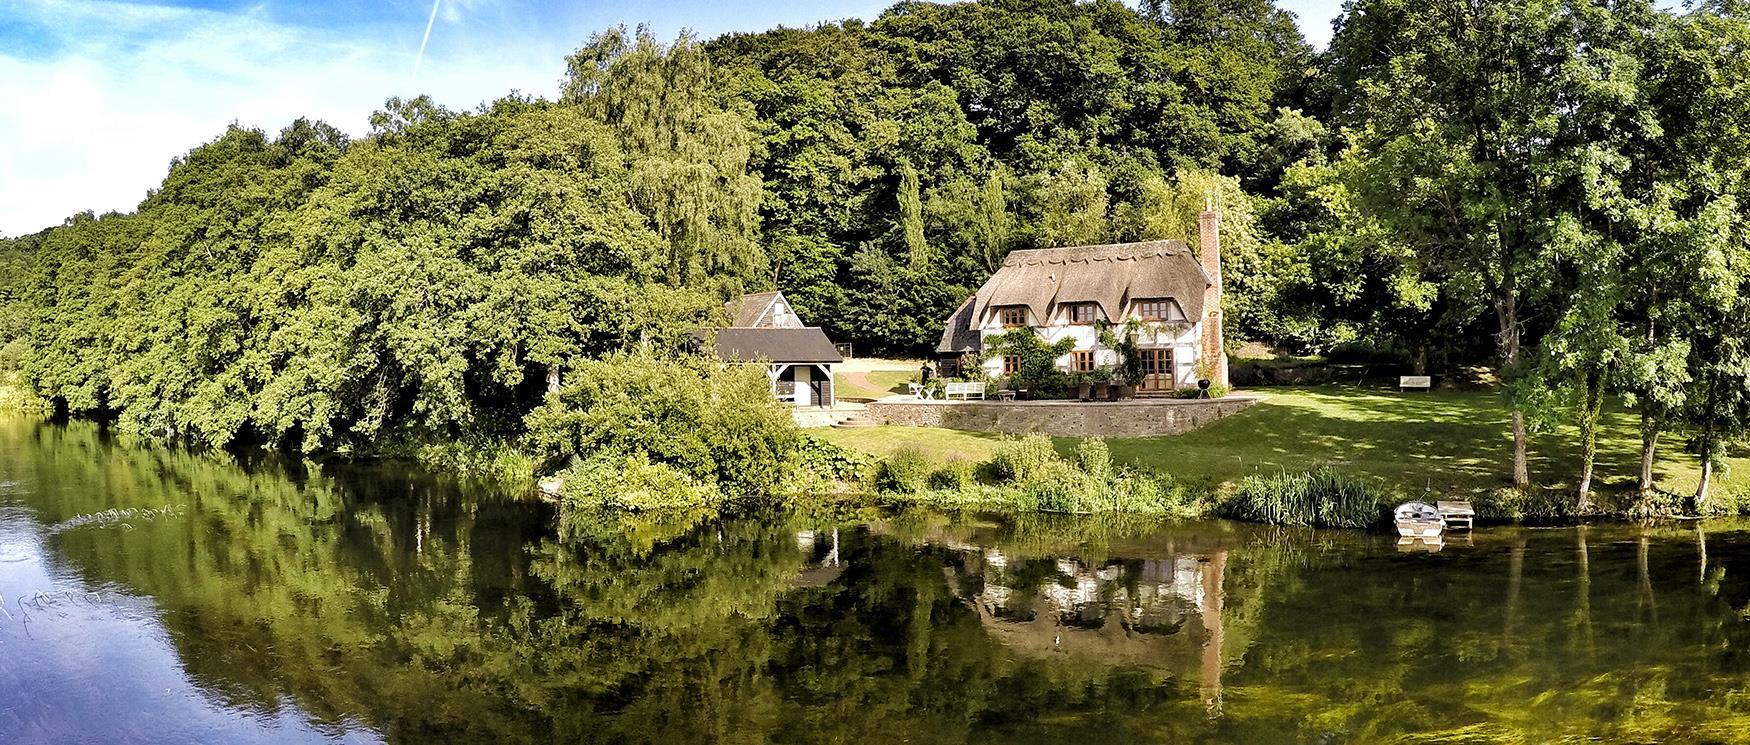 Luxury Holiday Cottages in Hampshire